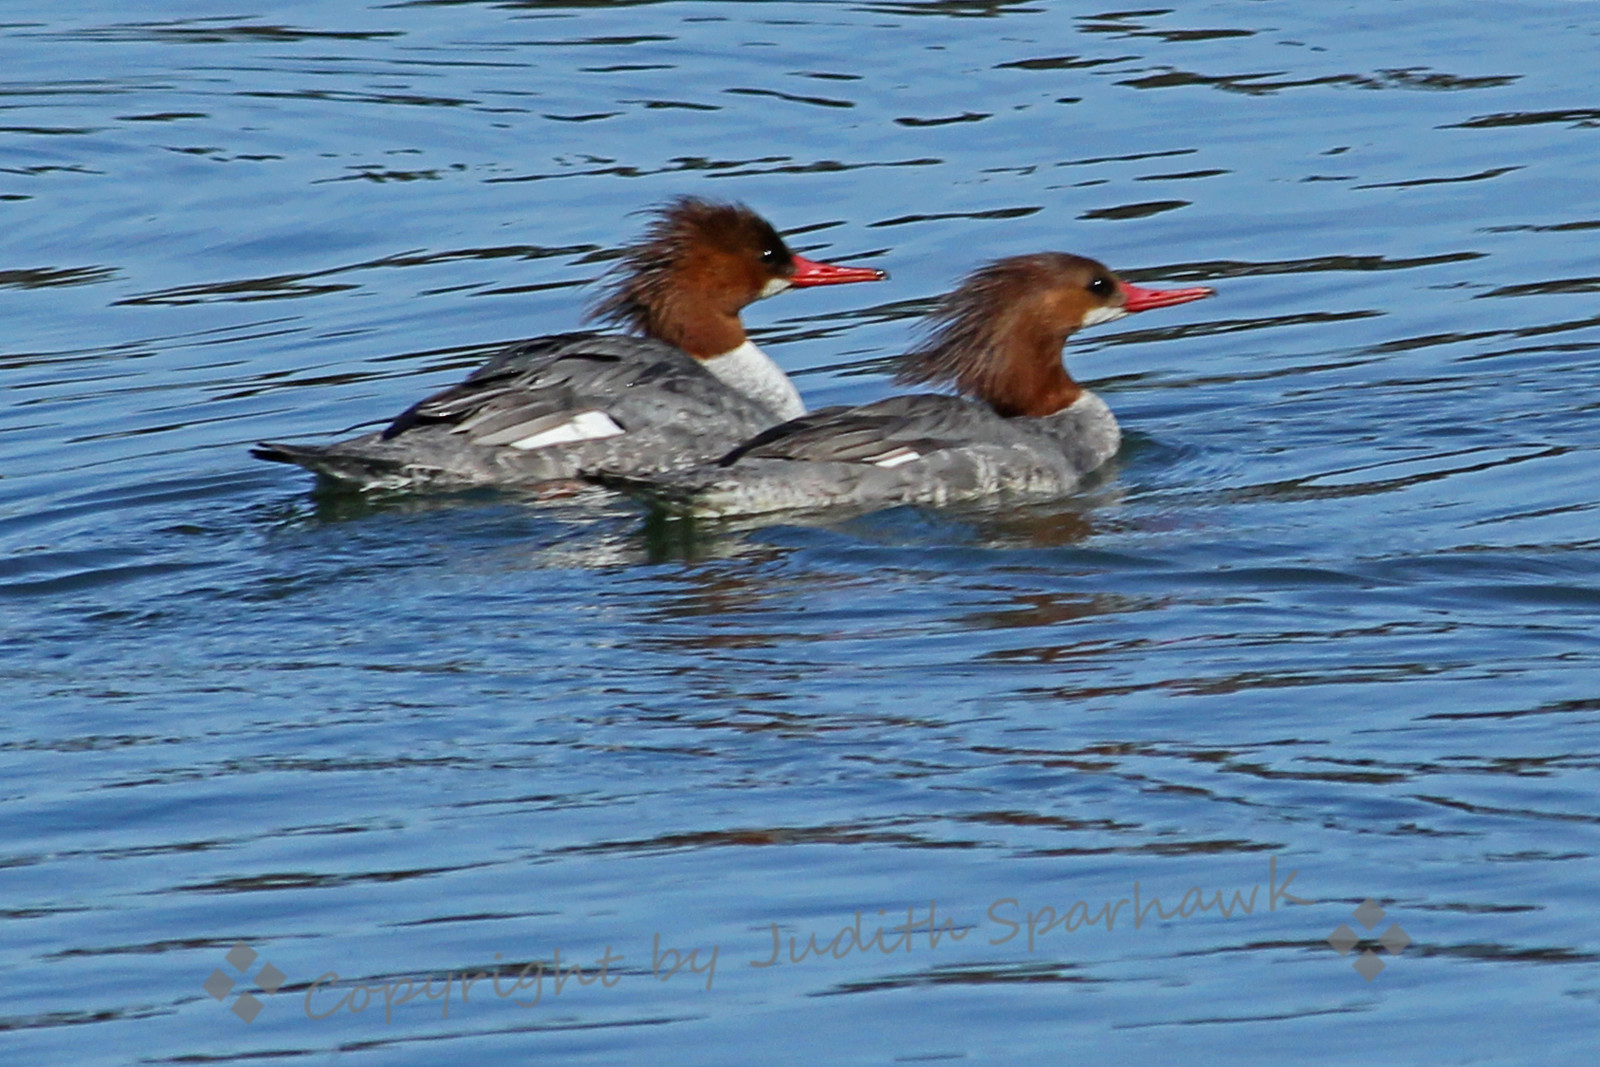 Female Common Mergansers ~ These mergansers were photographed at the Riverside National Cemetary.  As you can see, they are alive and well :-)  I liked the way they seemed to be swimming in formation....the military influence?